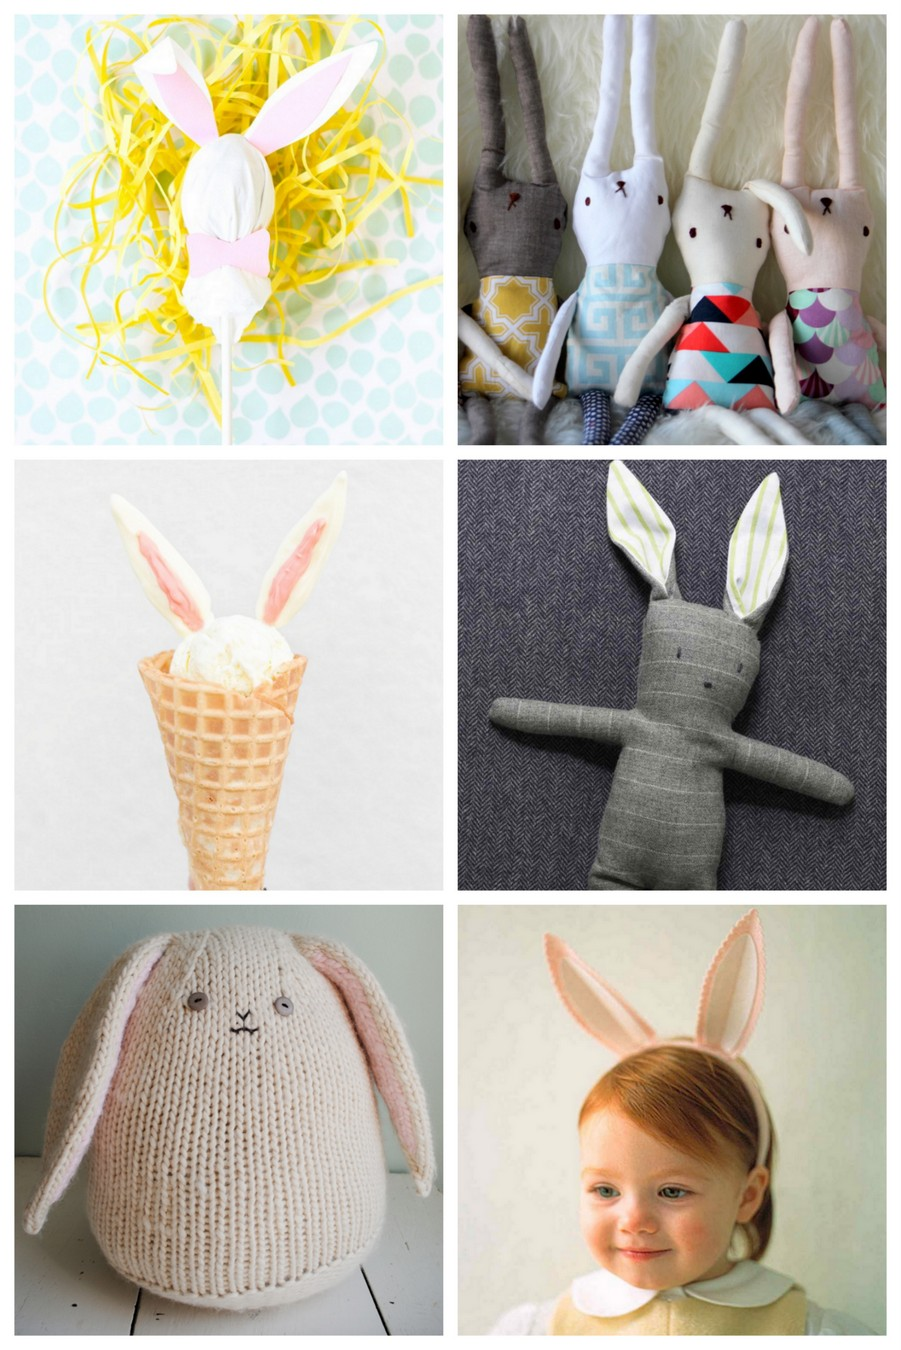 Get ready for easter baskets with these darling DIY bunny projects!